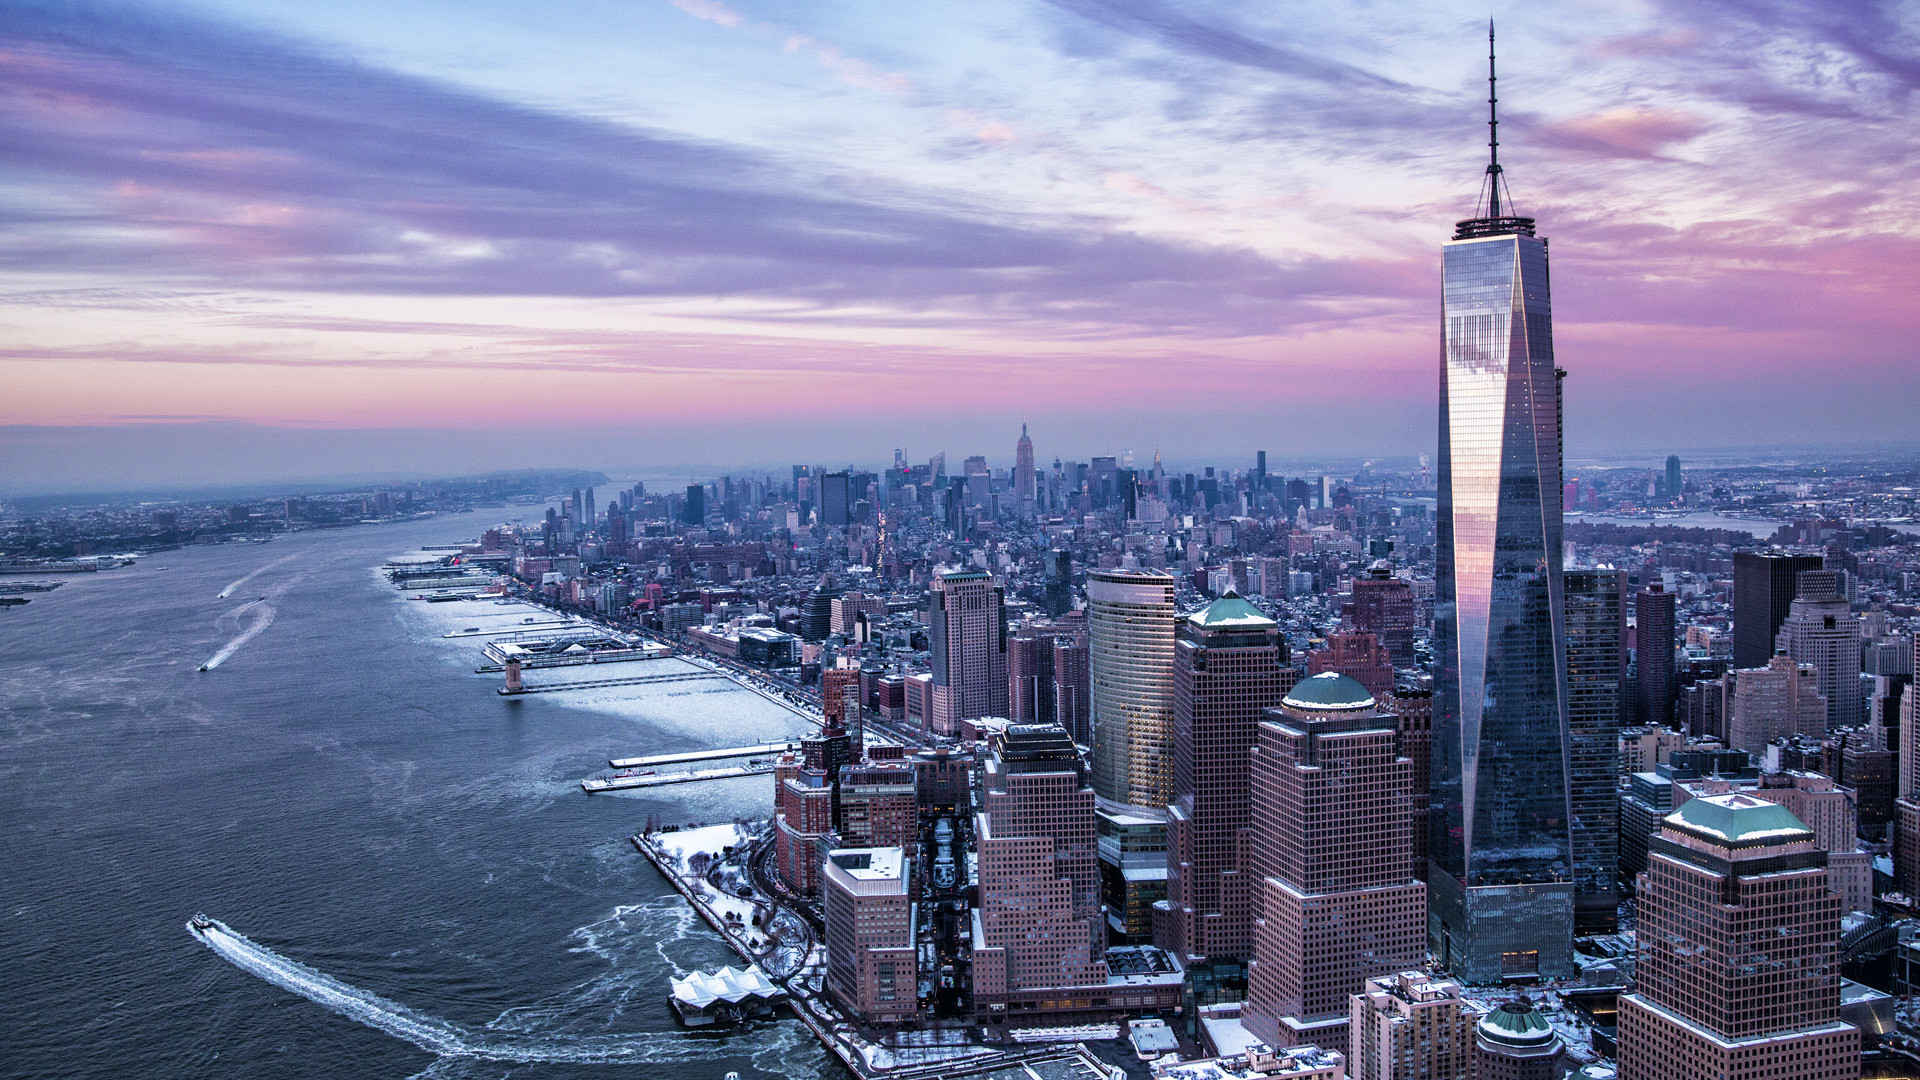 New York City Hd Wallpapers This Wallpaper 1920x1080